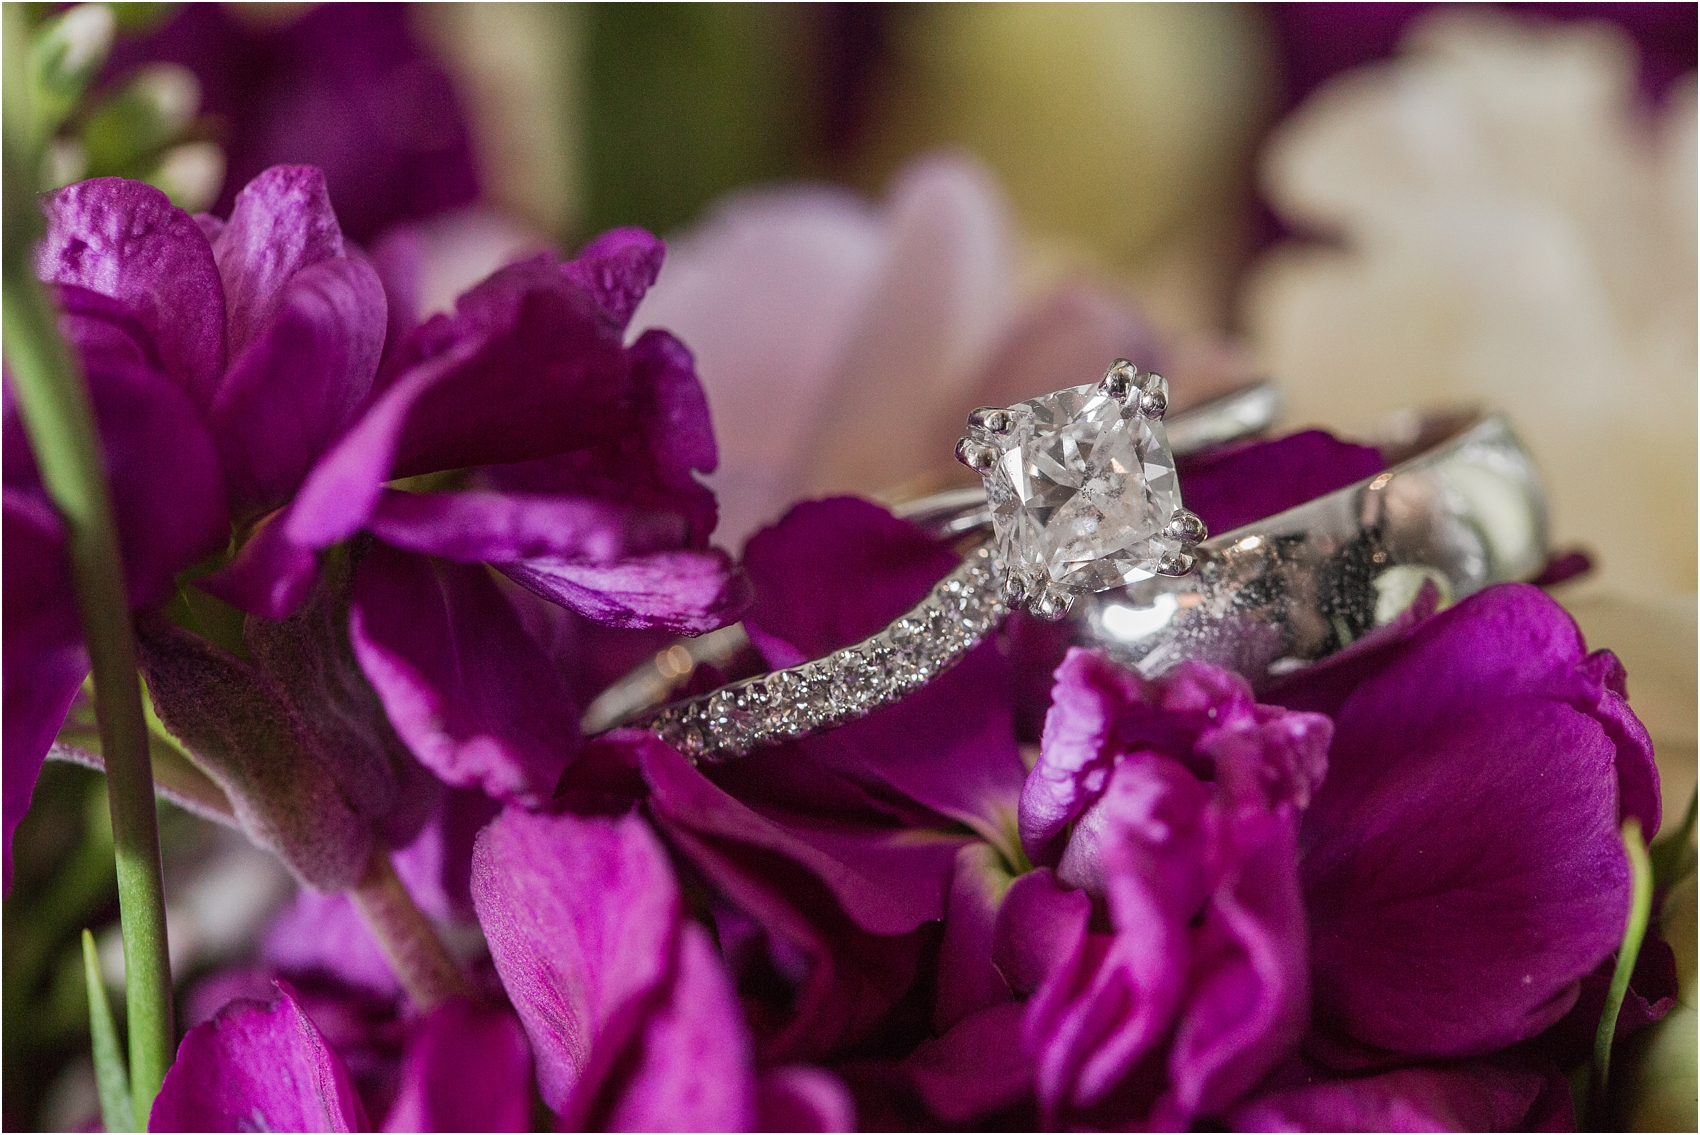 classic-wedding-photos-at-great-oaks-country-club-in-rochester-hills-mi-by-courtney-carolyn-photography_0020.jpg